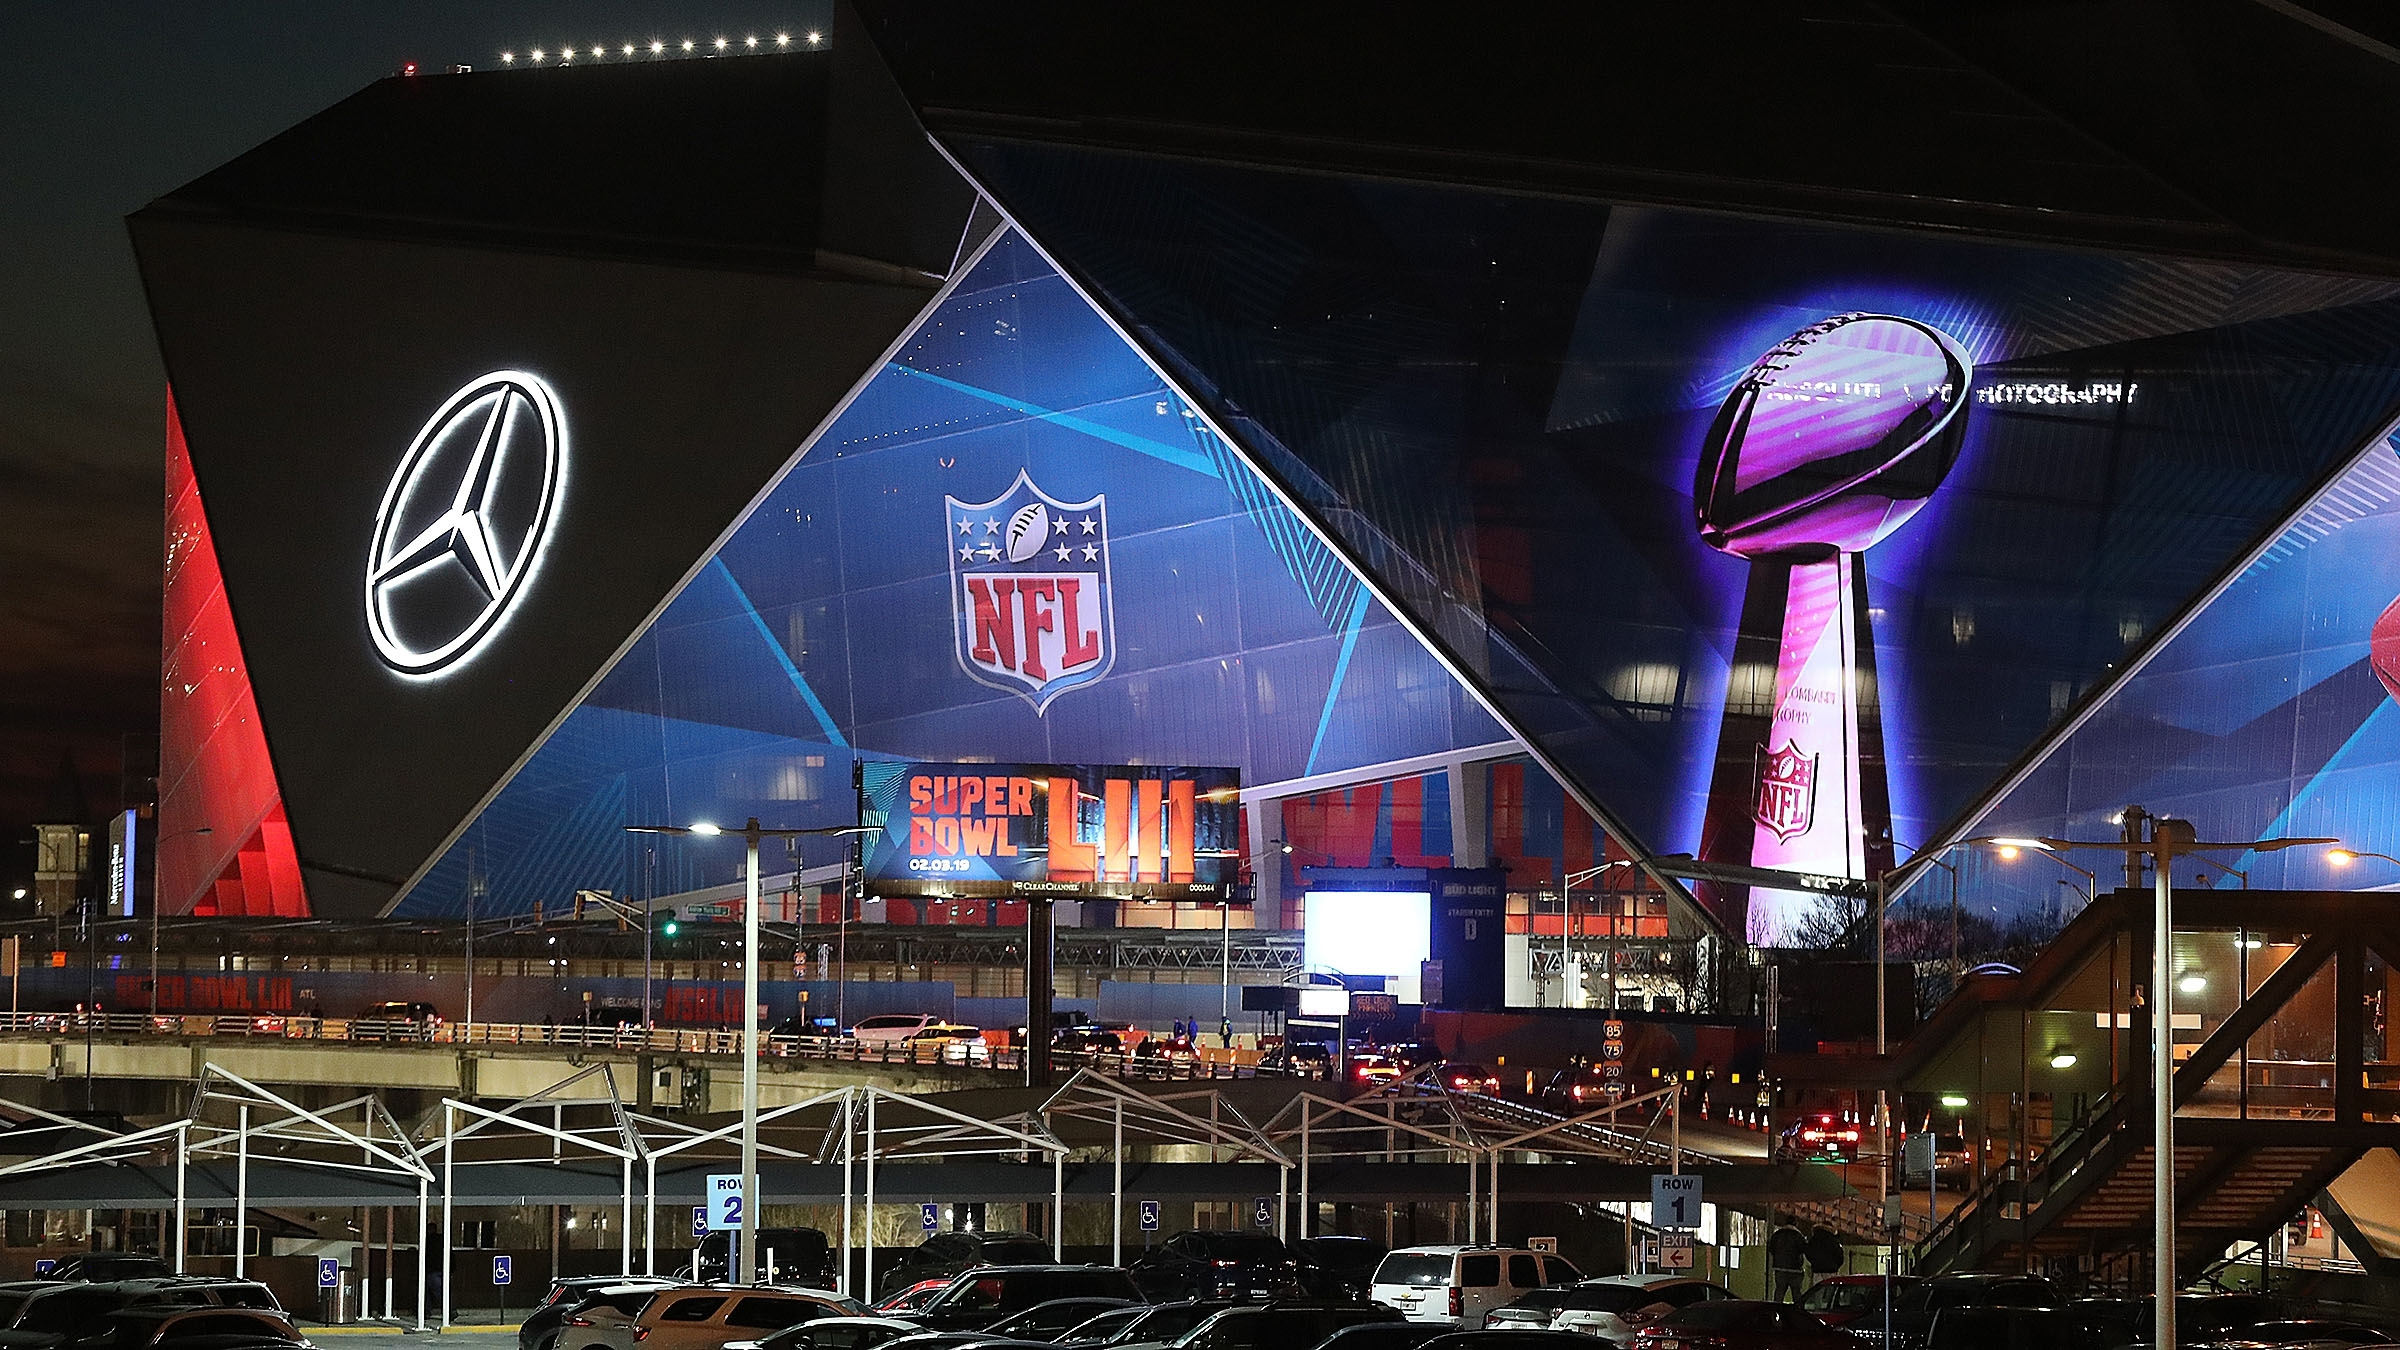 Flipboard: After Atlanta, These Are The Future Super Bowl Sites intended for Future Super Bowl Sites